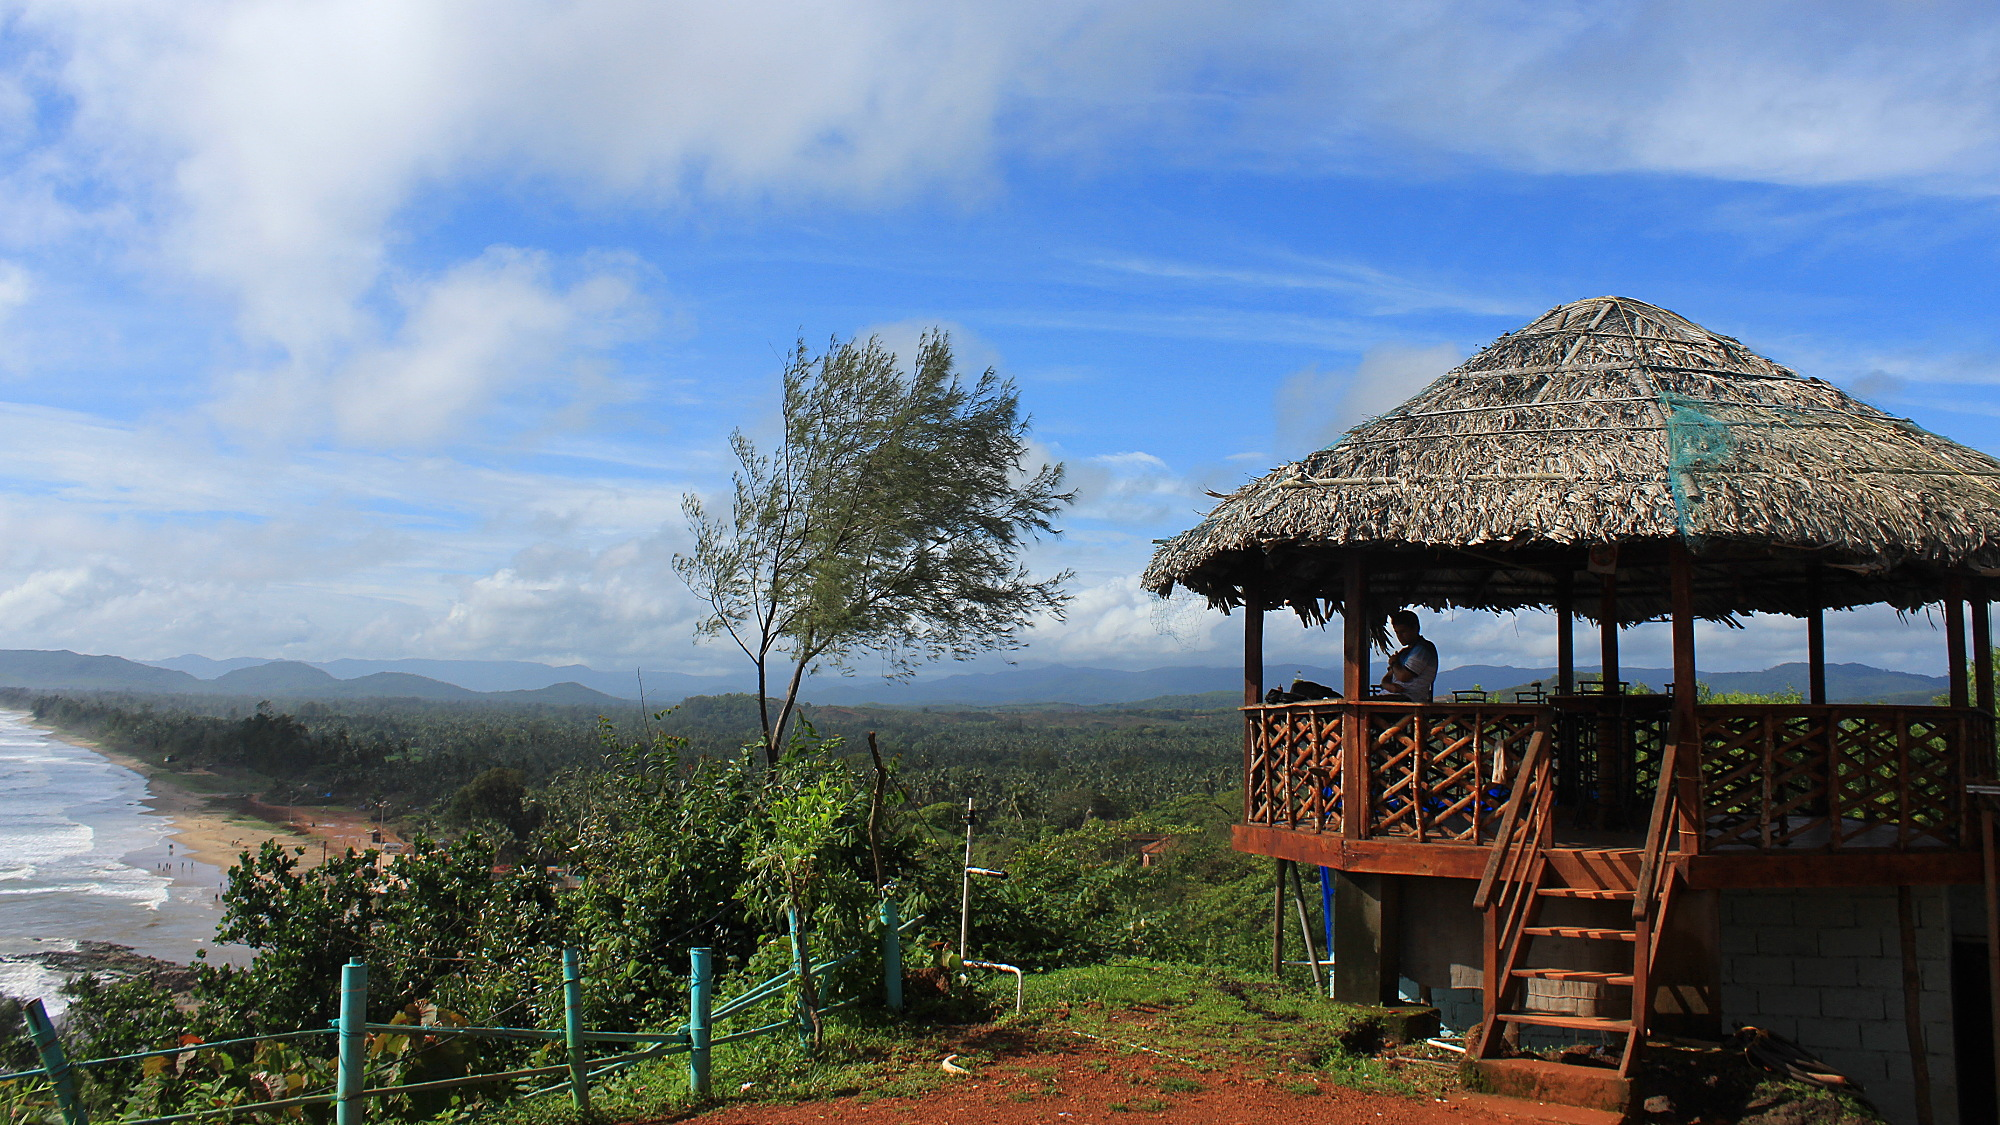 The yard of Zostel Gokarna with blue sky and a viewpoint restaurant hut on the hill.